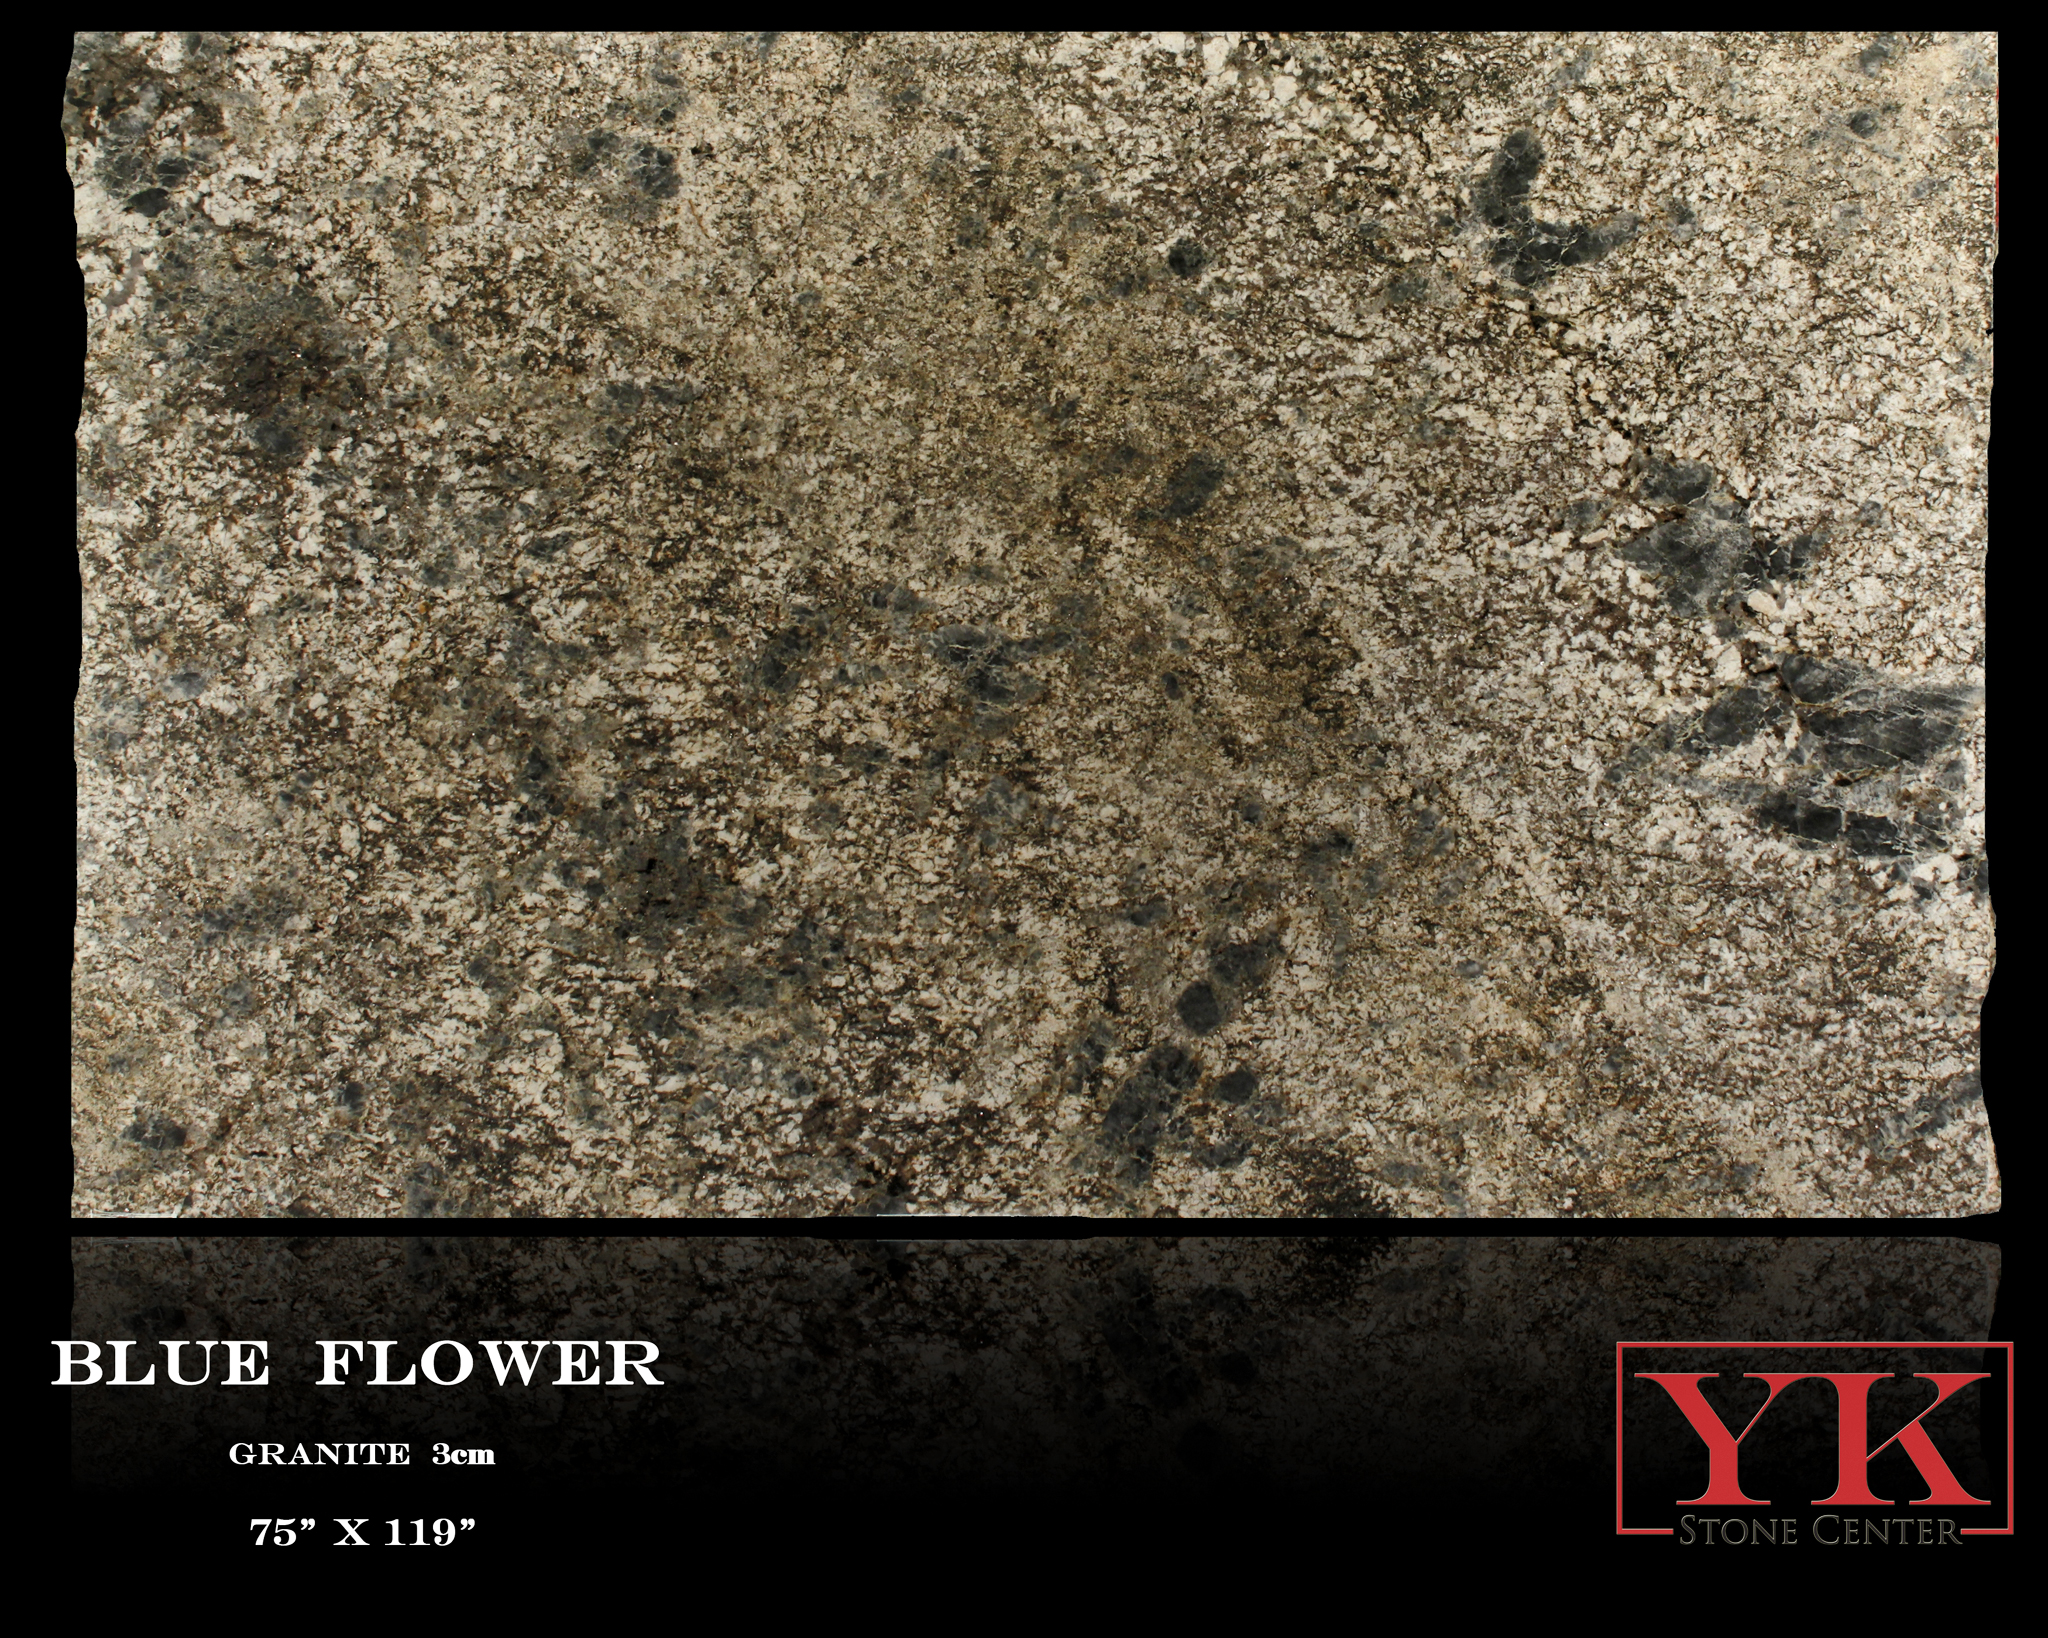 Blue Flower Granite Slabs, YK Stone Center In Denver Colorado, Natural Stone Showroom